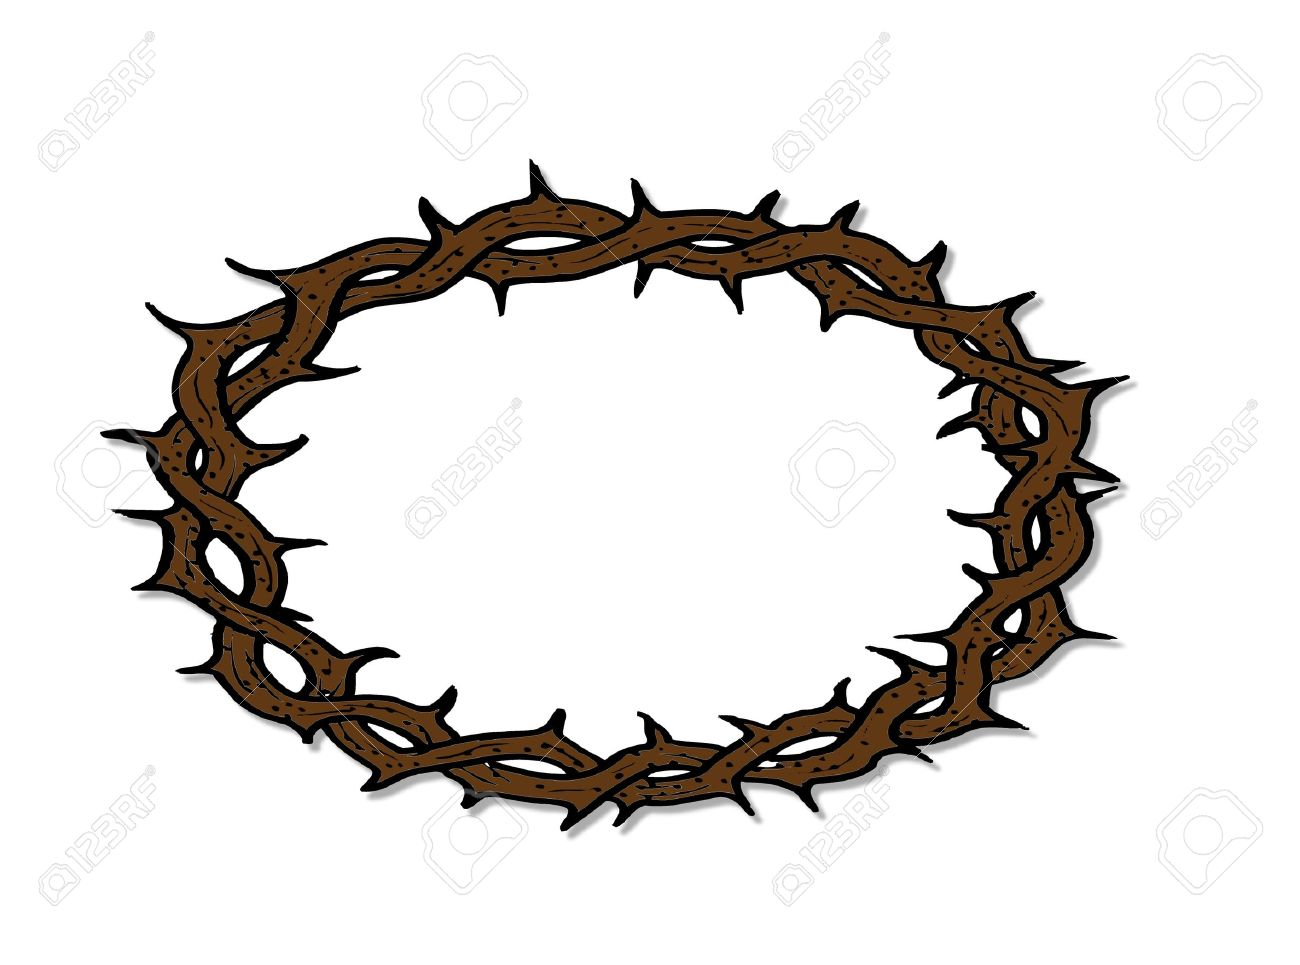 crown of thorns royalty free cliparts vectors and stock rh 123rf com crown of thorns vector free download crown of thorns vector free